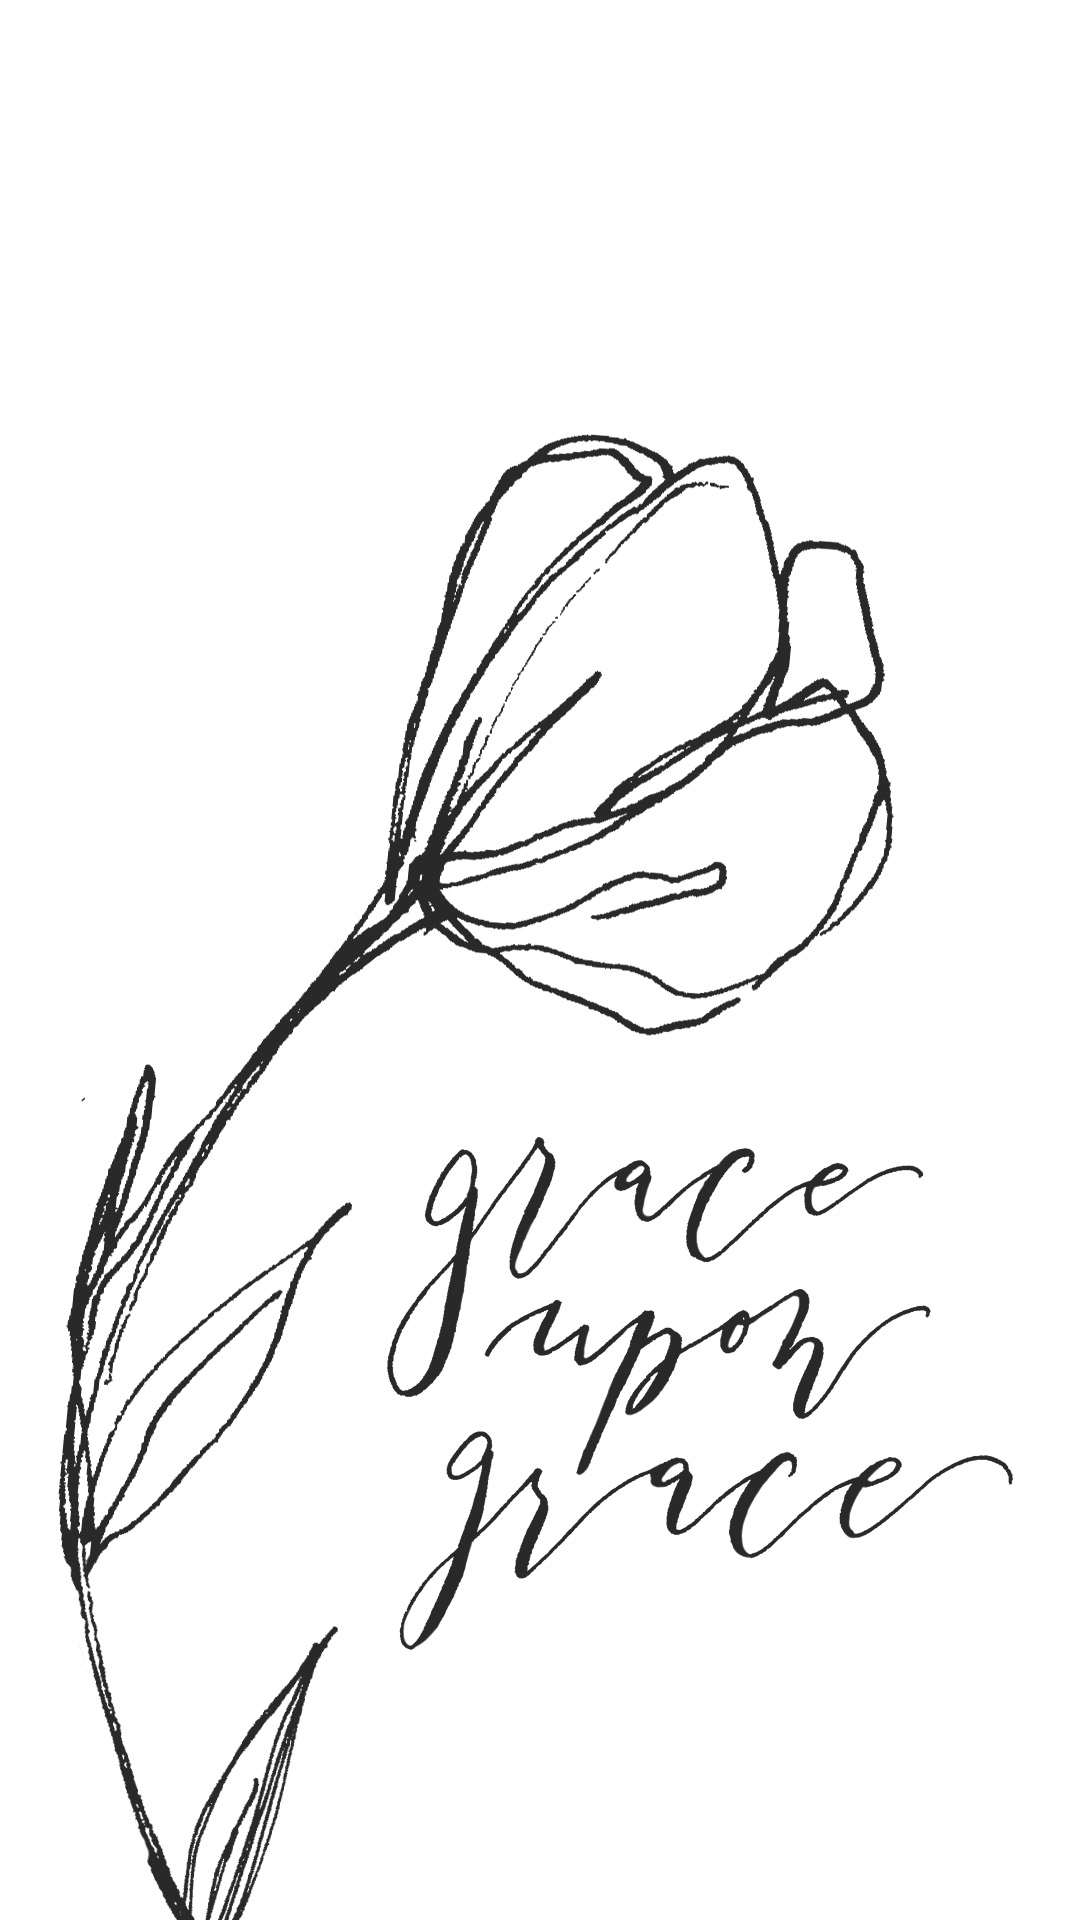 Grace Upon Grace Lock Screen in Calligraphy - True North Paper Co.